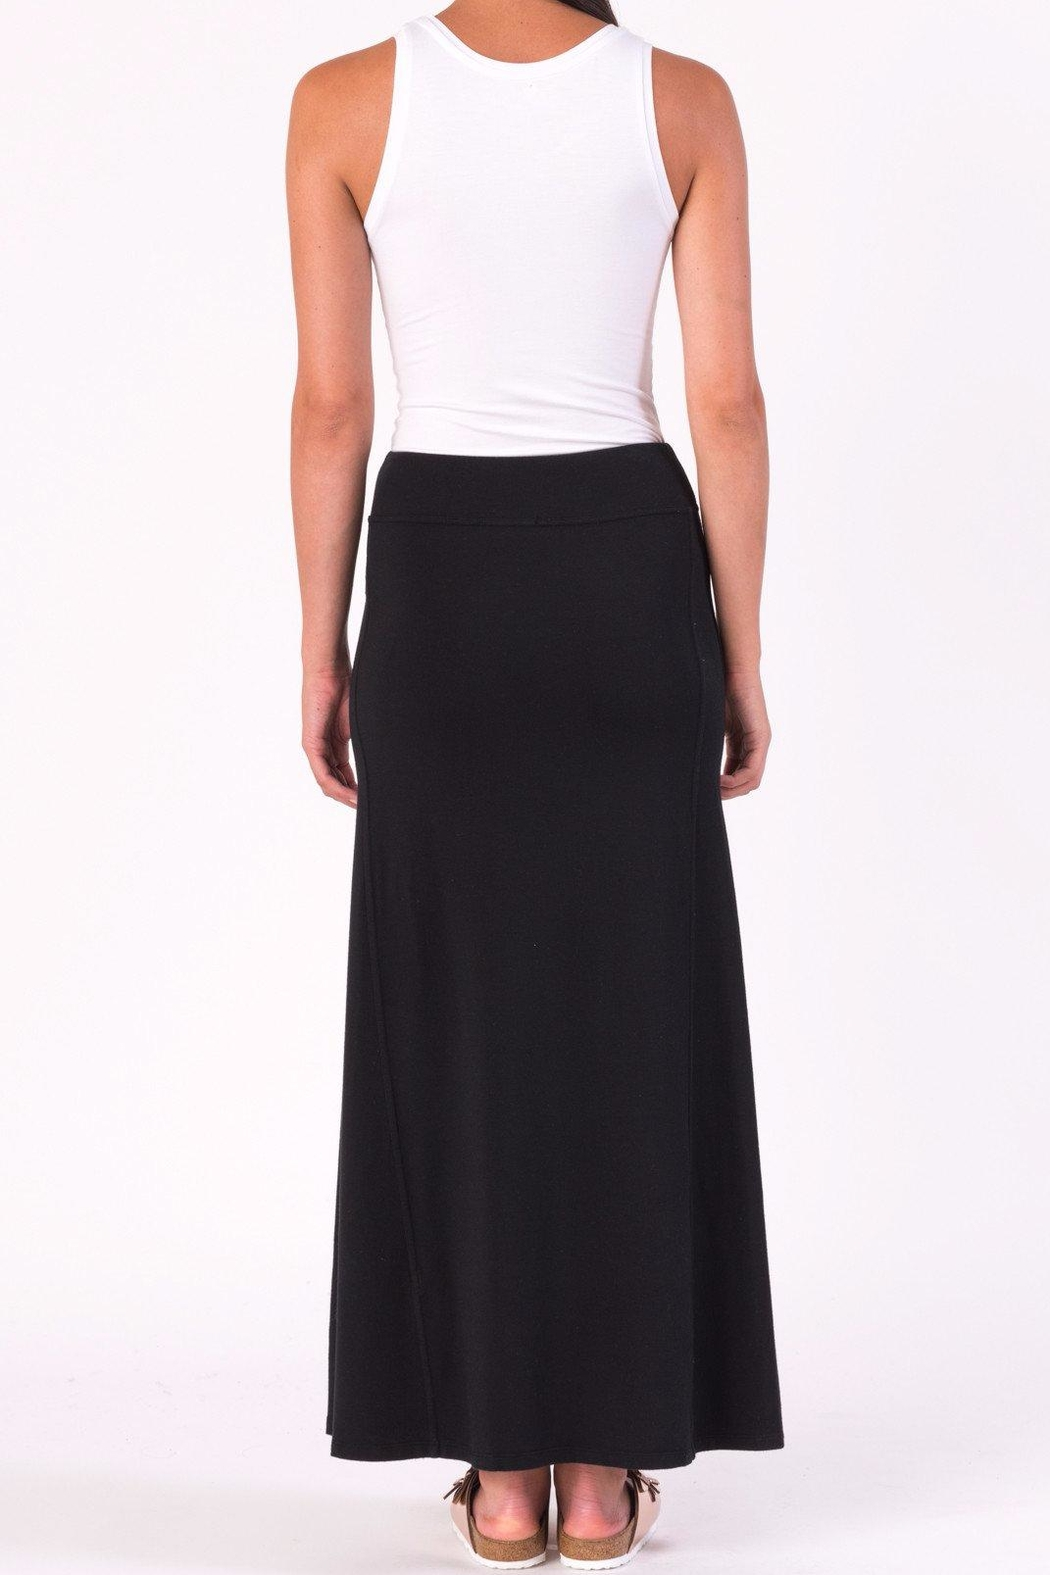 Margaret O'Leary Maxi Panel Skirt - Side Cropped Image